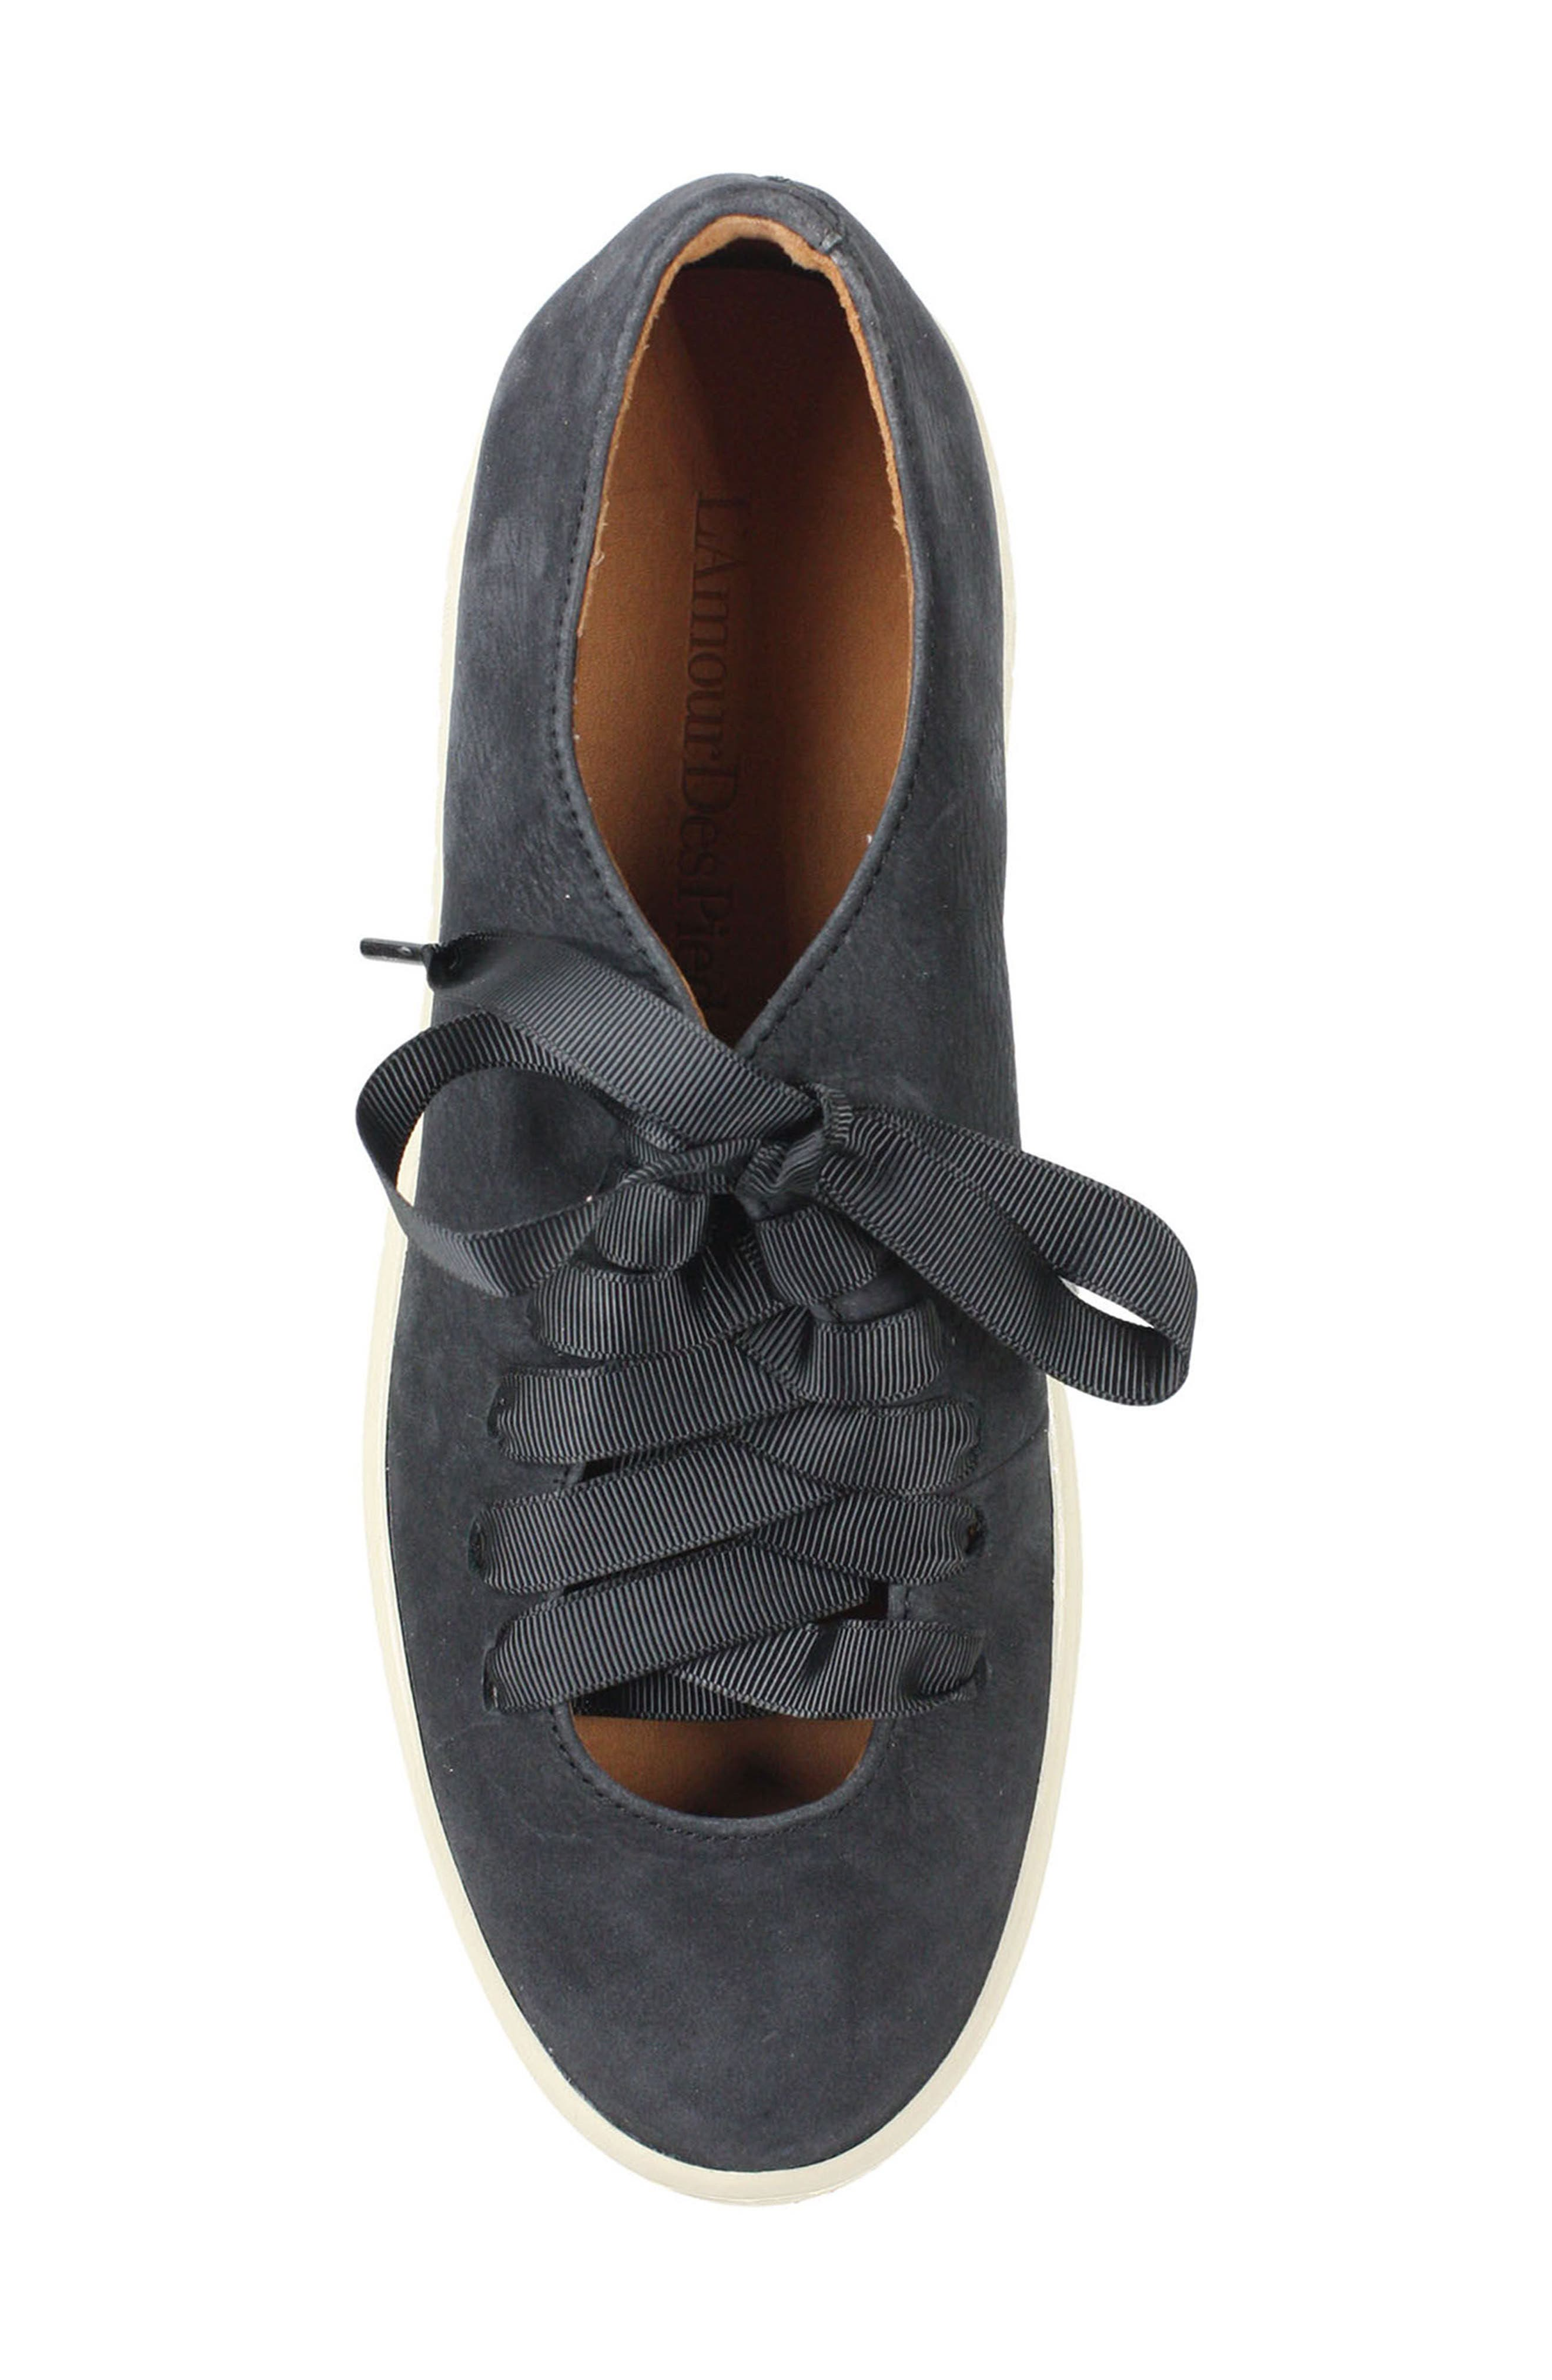 Zaheera Sneaker,                             Alternate thumbnail 5, color,                             Black Nubuck Leather